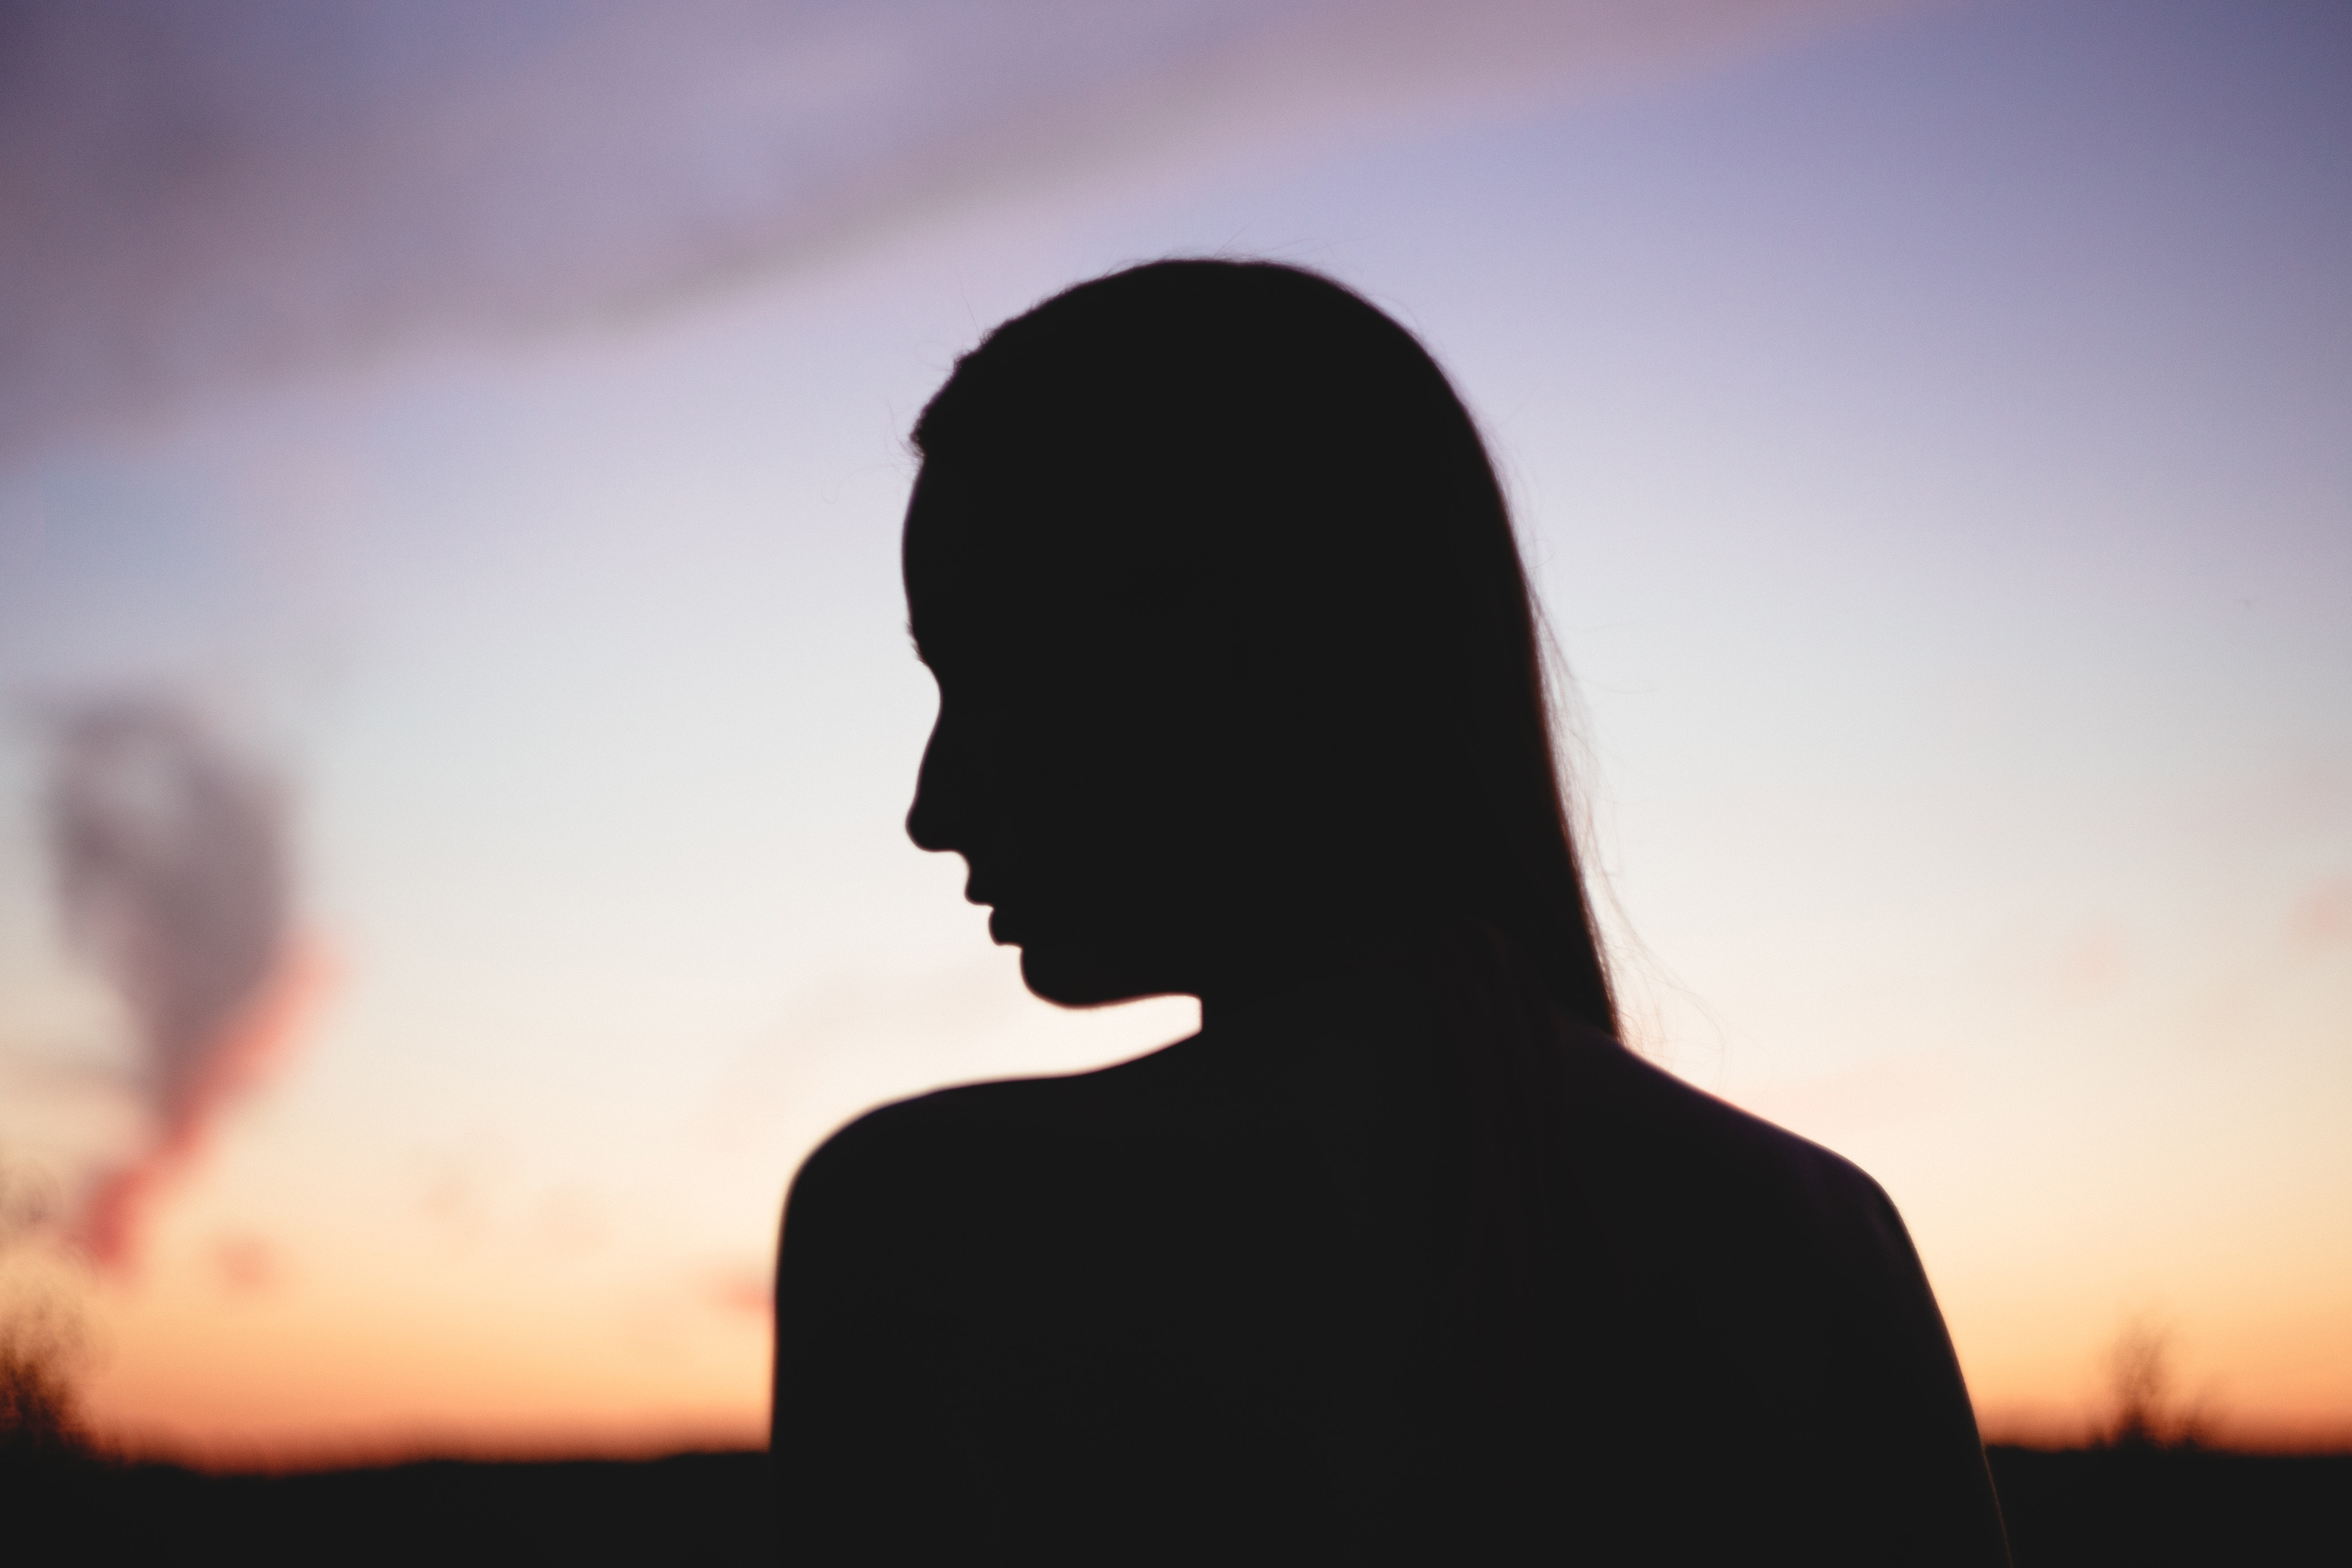 Silhouette of woman during sunset photo